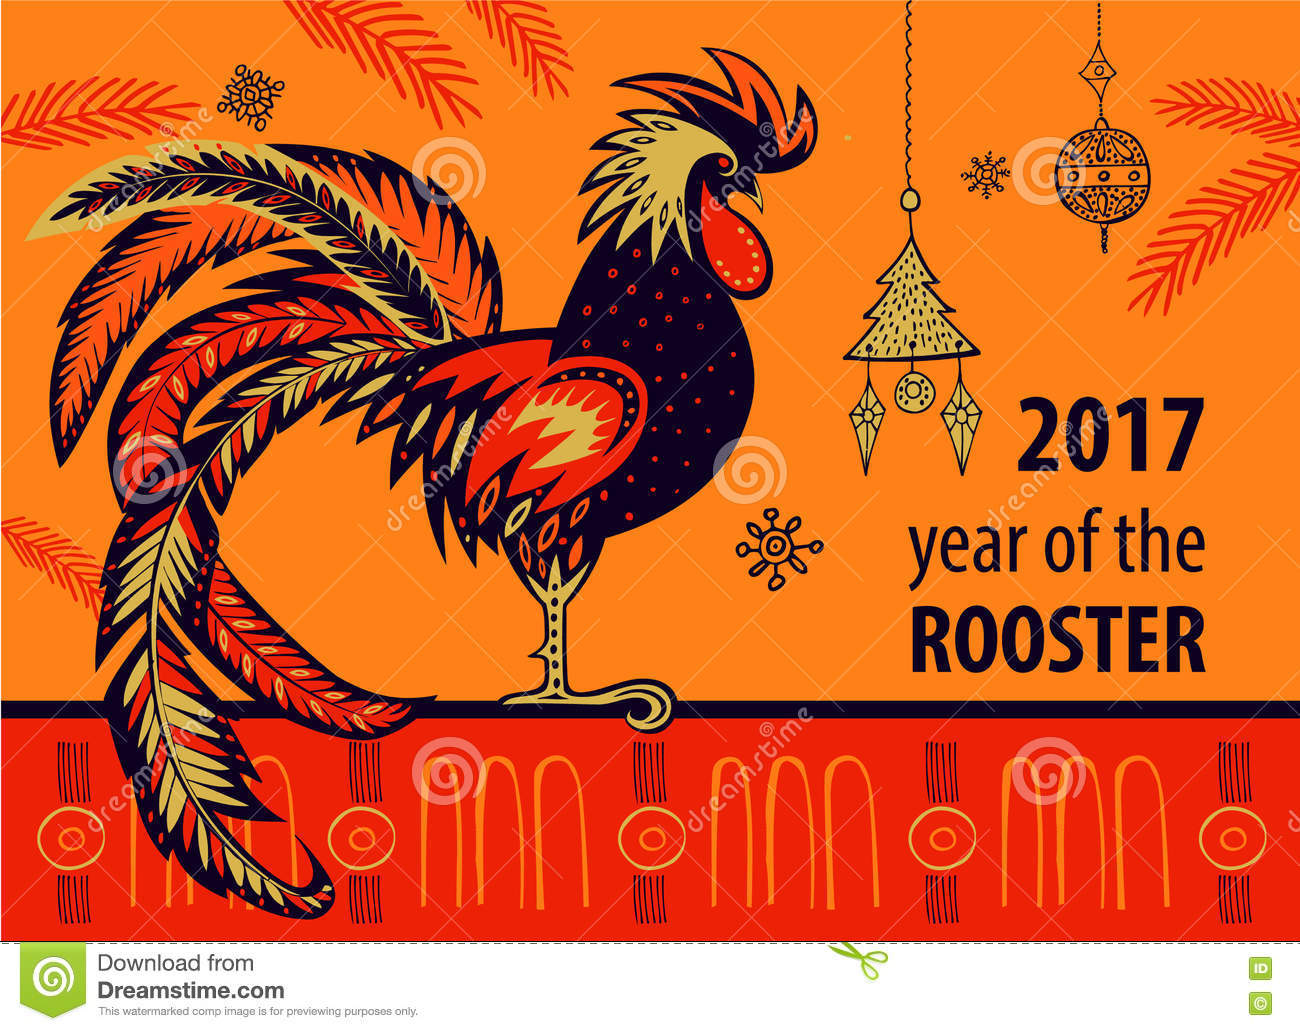 chinese-new-year-rooster-vector-illustration-x-xmas-tree-hand-drawn-silhouette-white-red-73112760